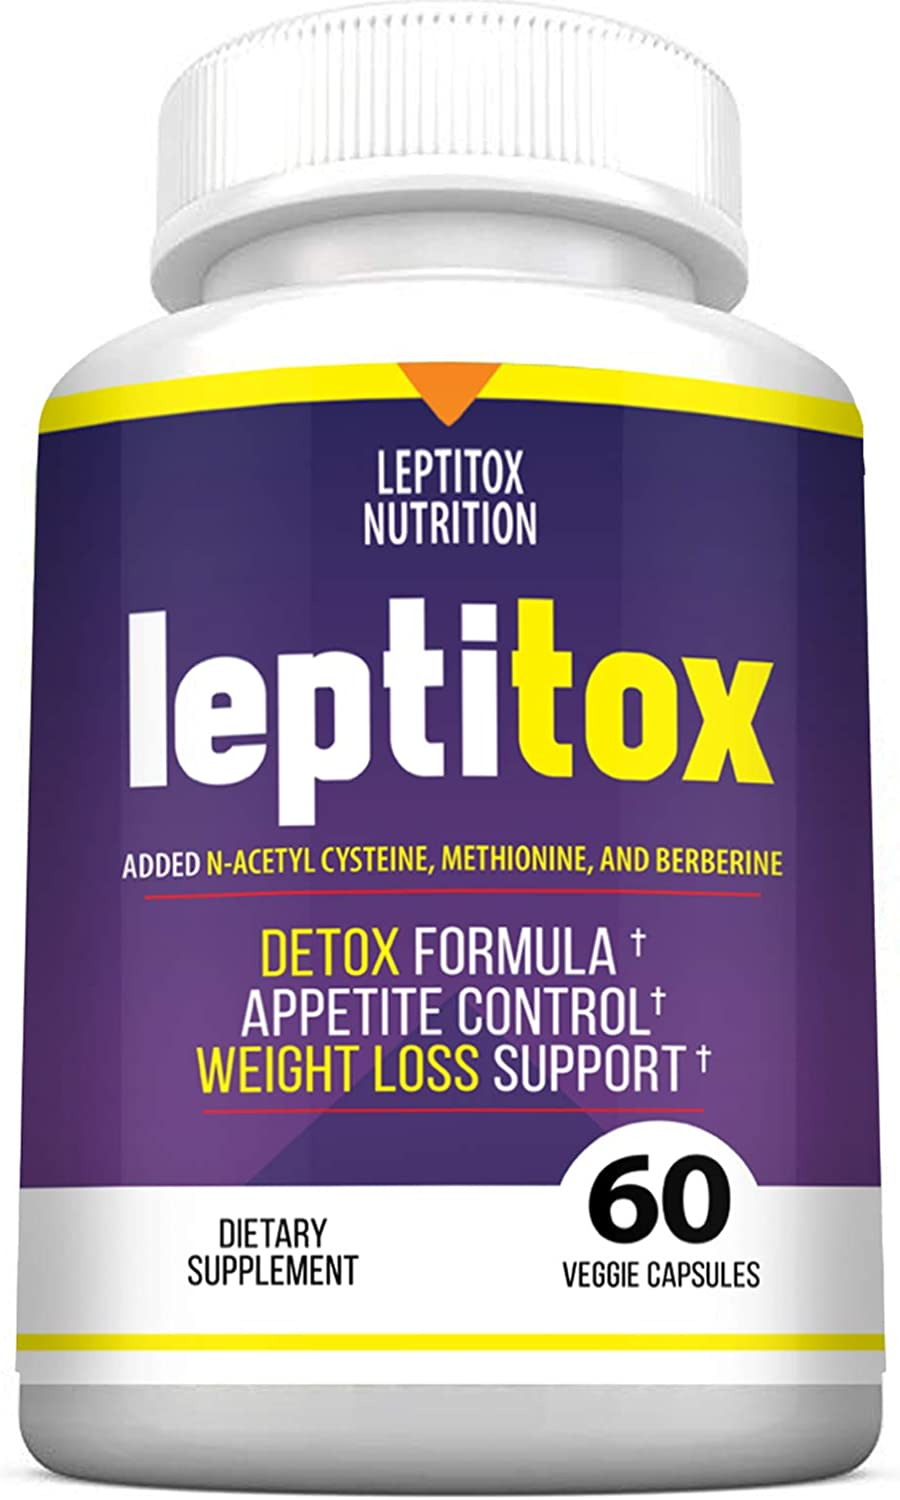 Leptitox Weight Loss Coupons Don'T Work 2020